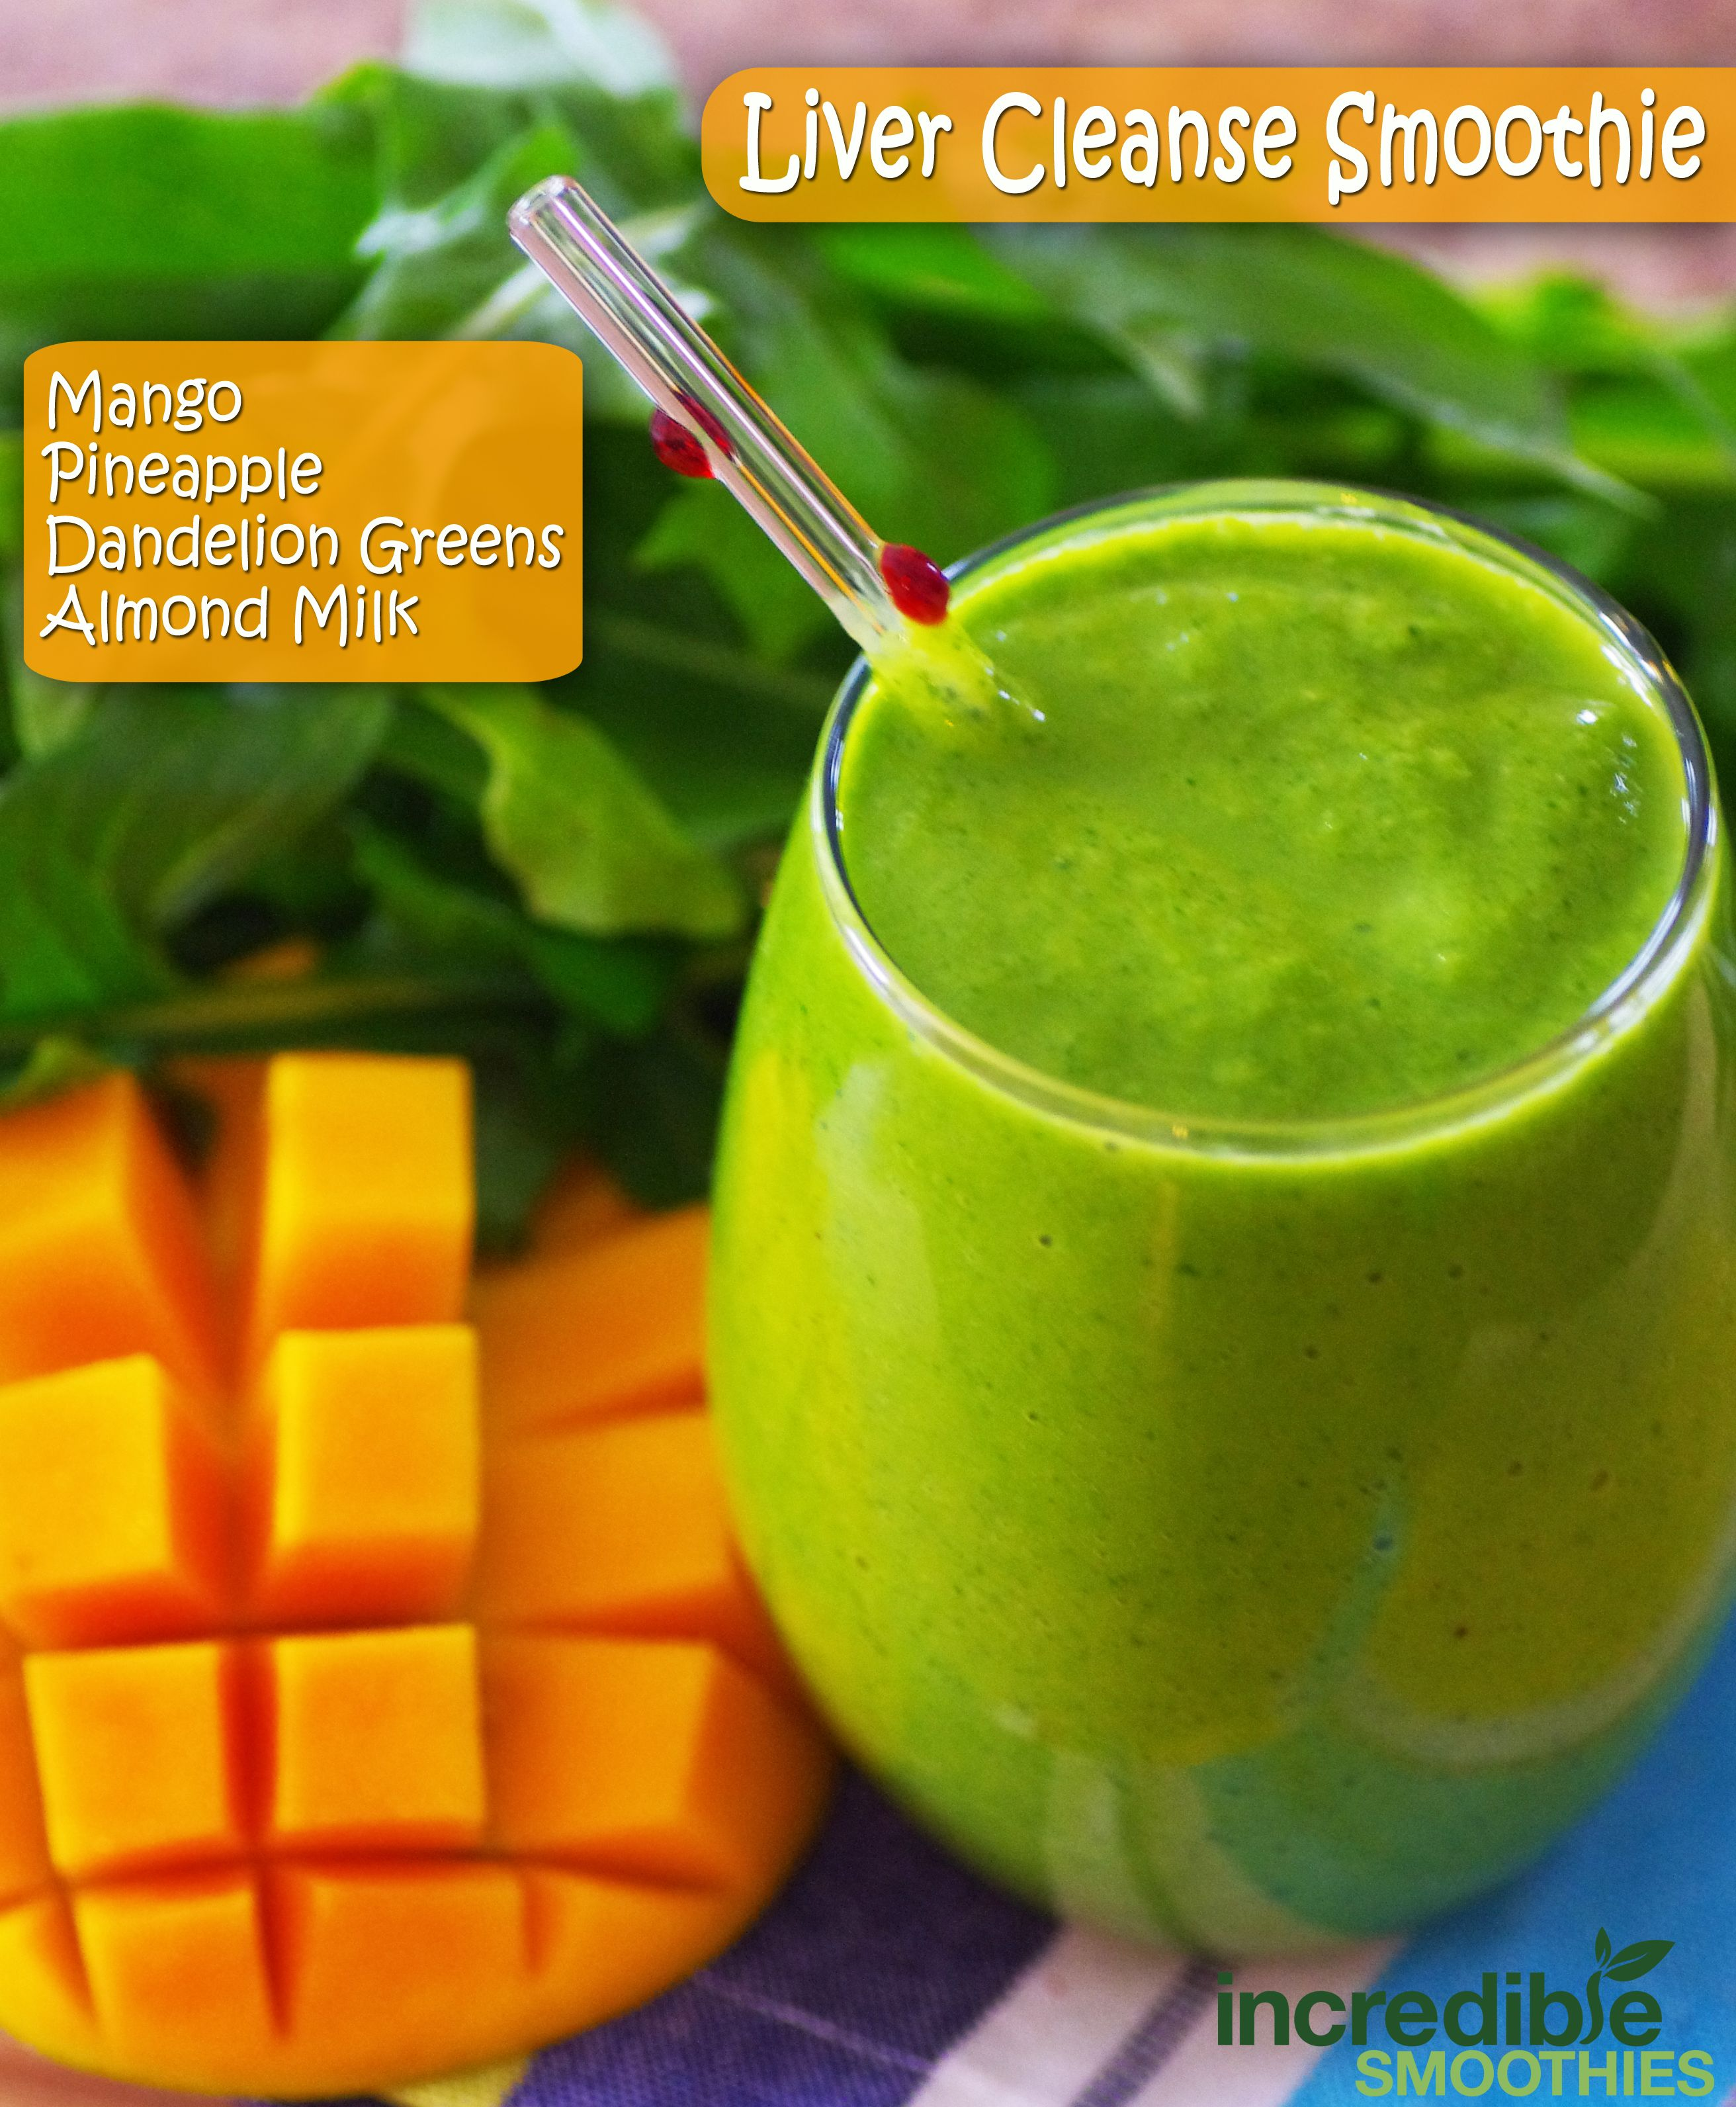 Liver Cleanse Green Smoothie ->http://on.fb.me